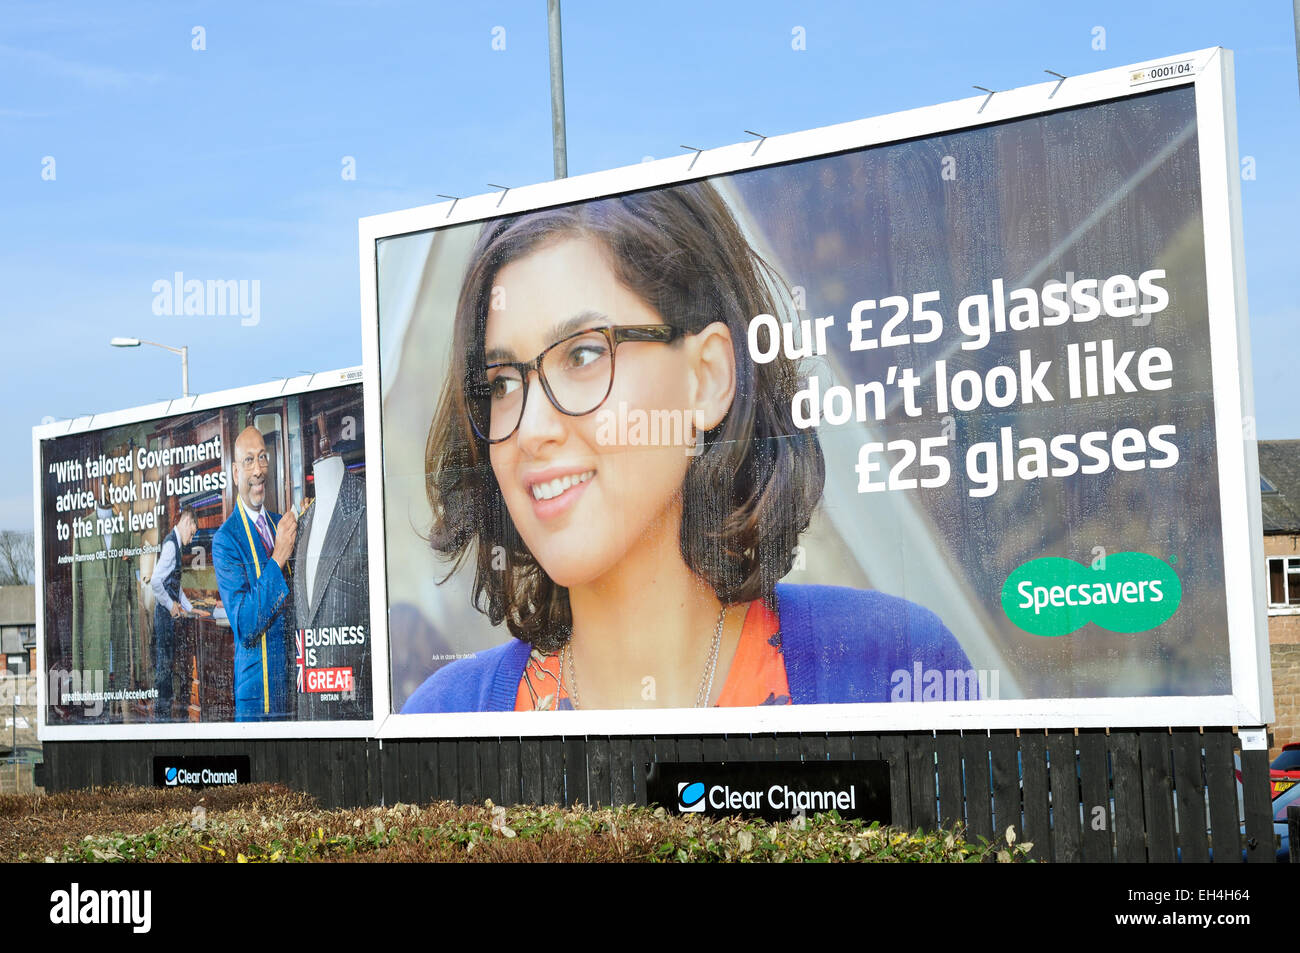 specsavers and advert stock photos specsavers and advert stock specsavers billboard advertising mansfield uk stock image